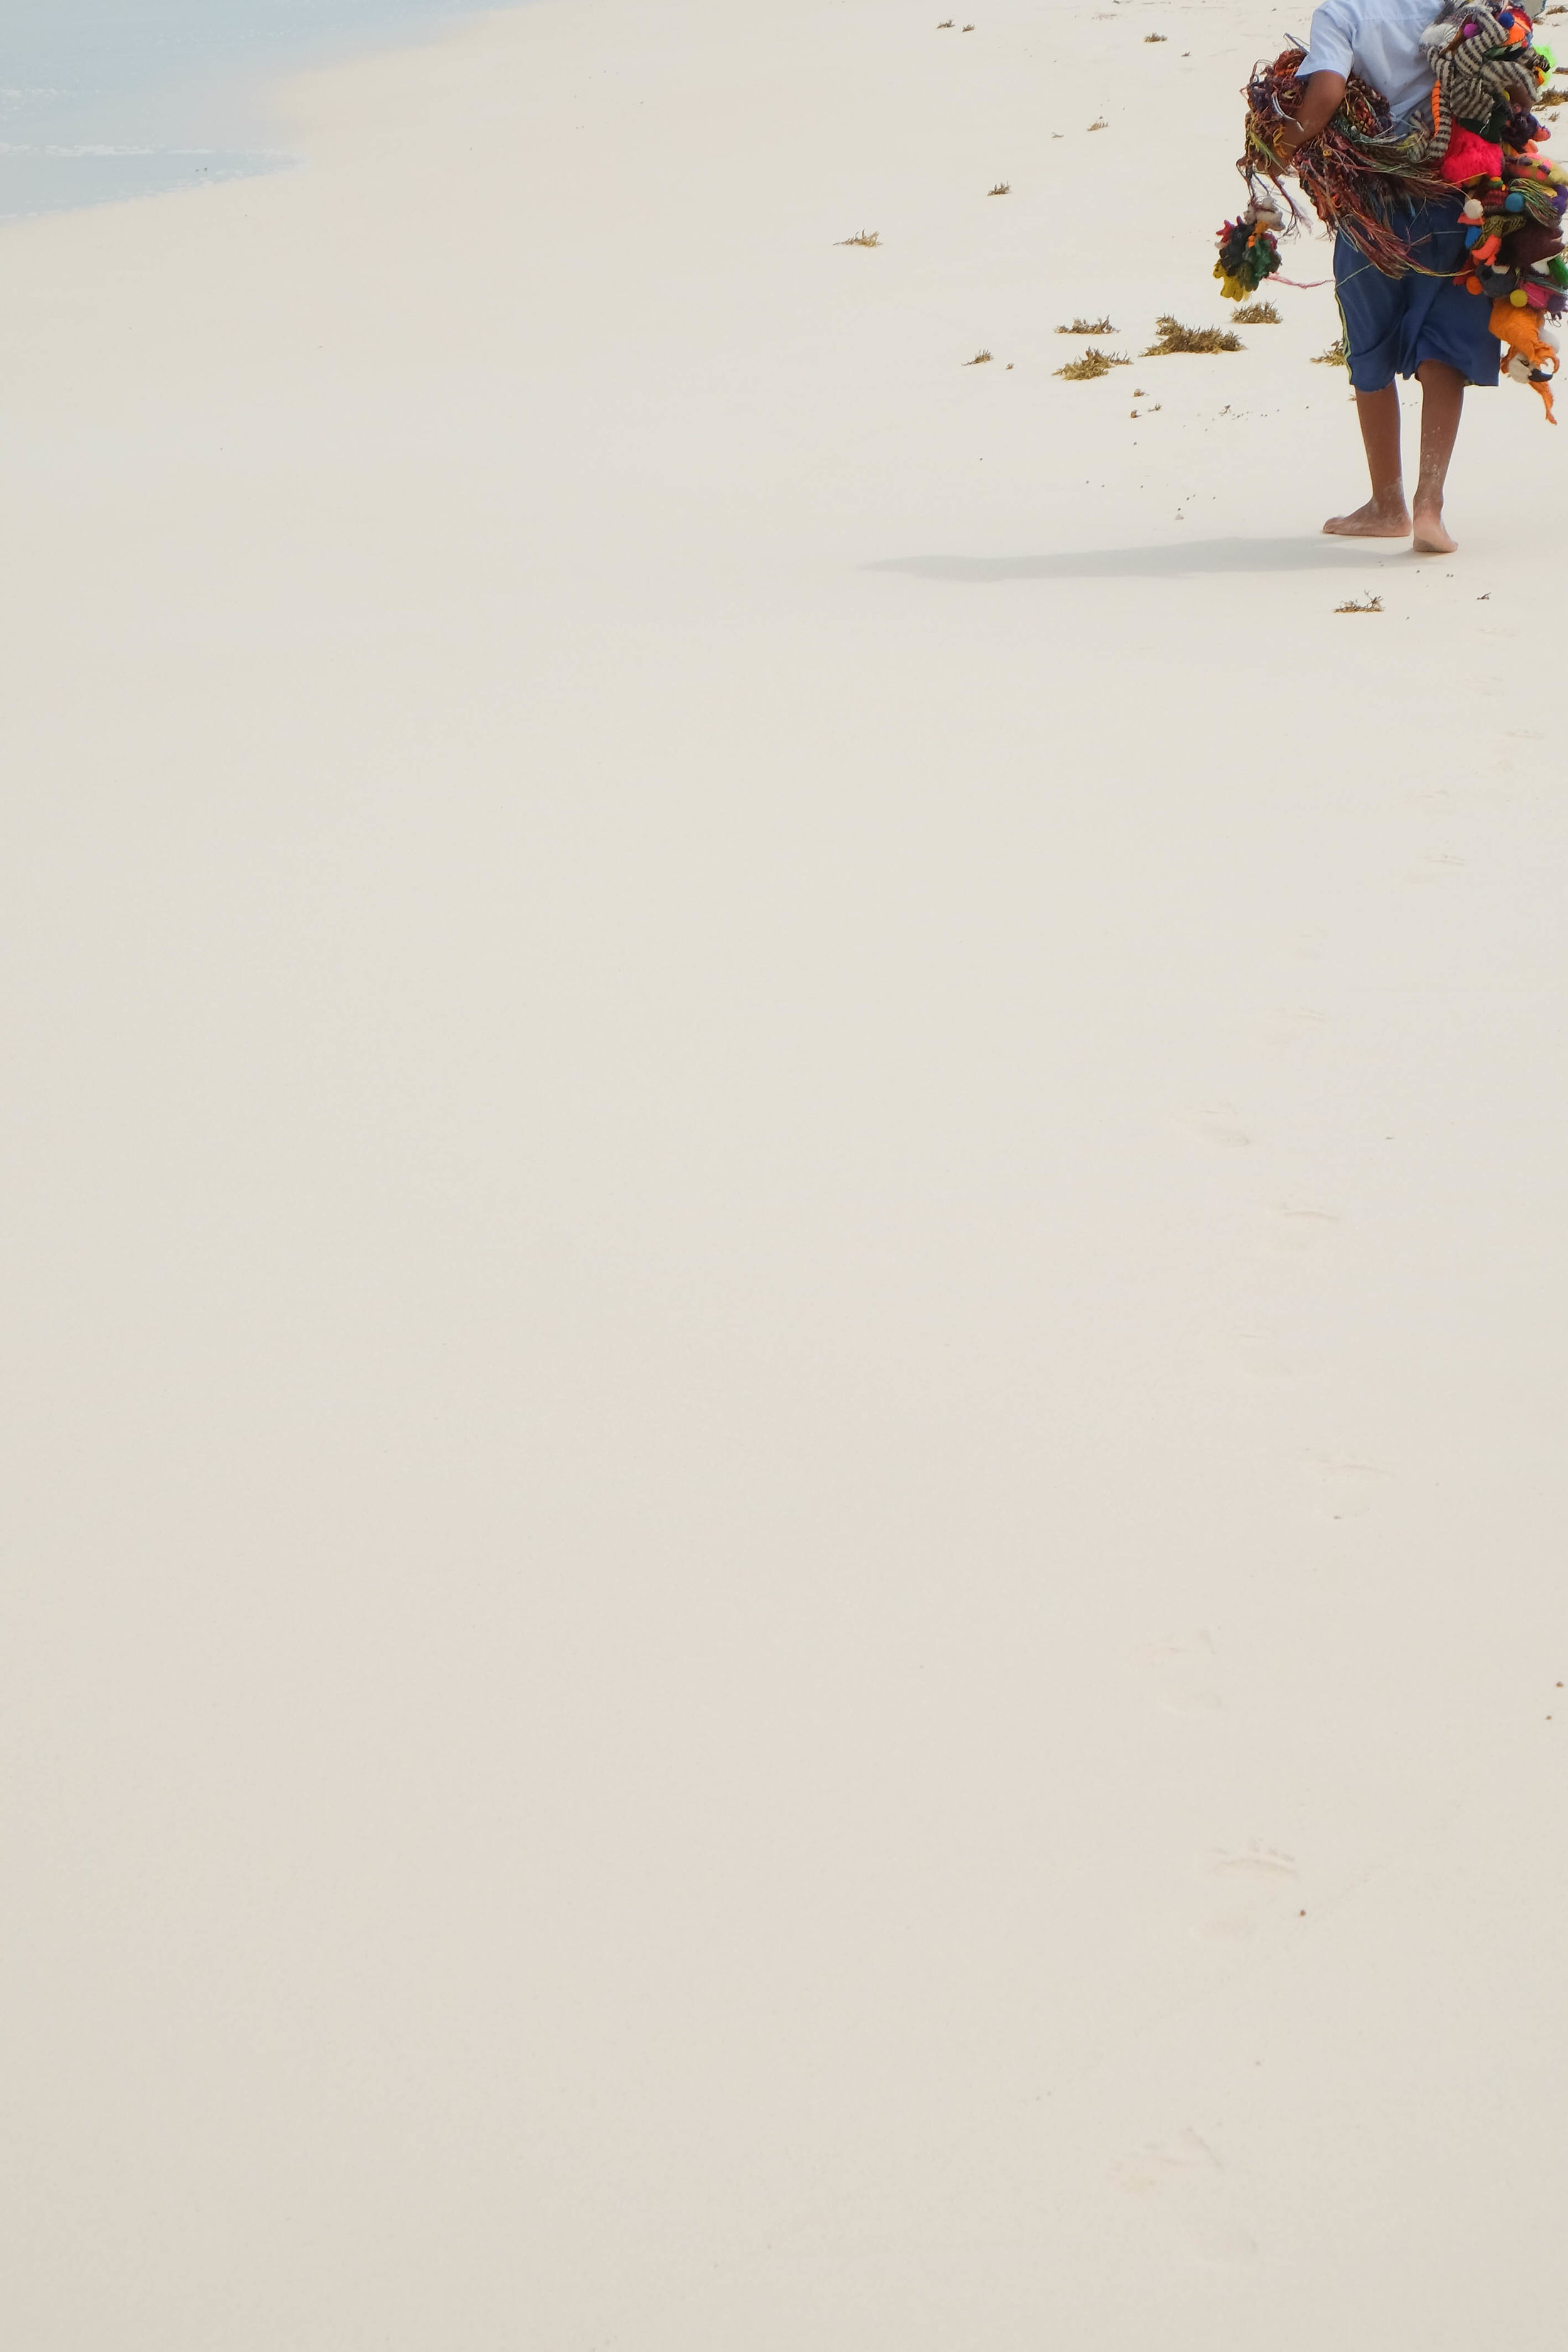 jacob-ruiz-design-photography-mexico-tulum-kid-on-beach